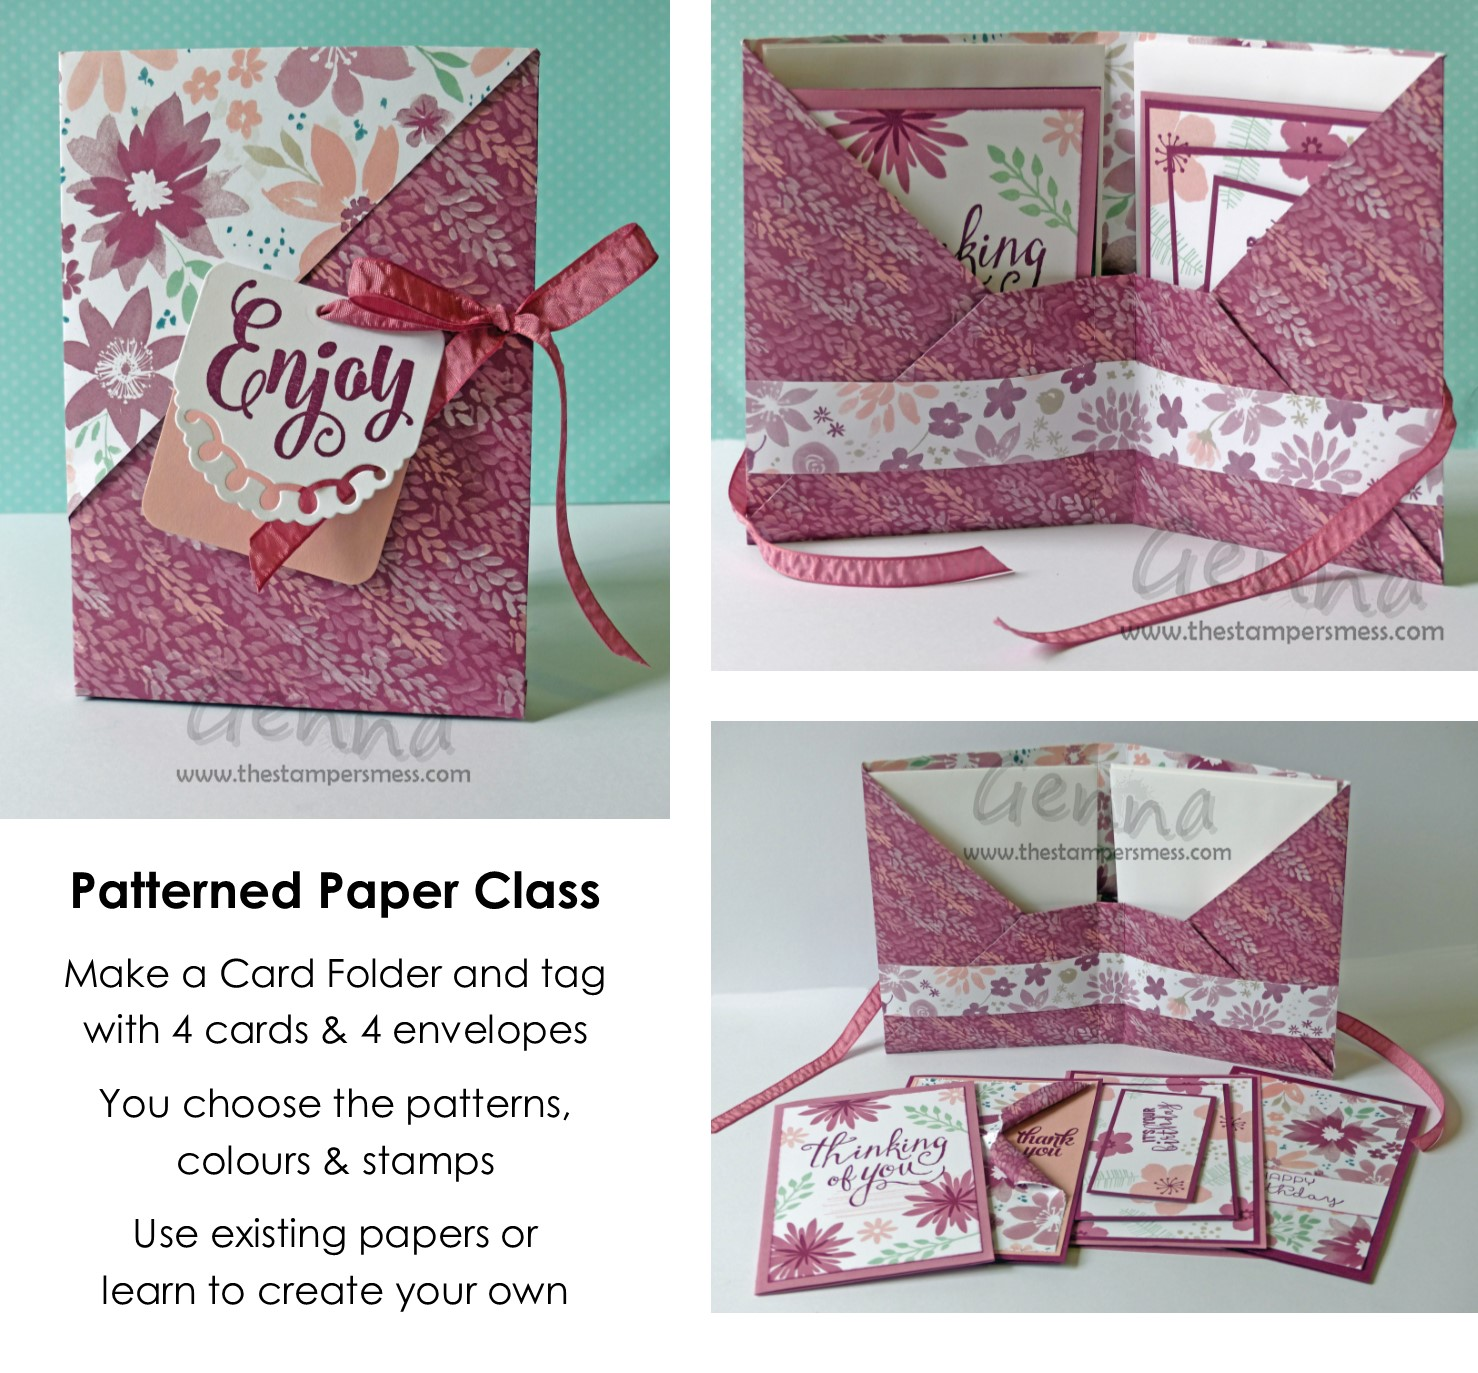 Patterned Paper Class